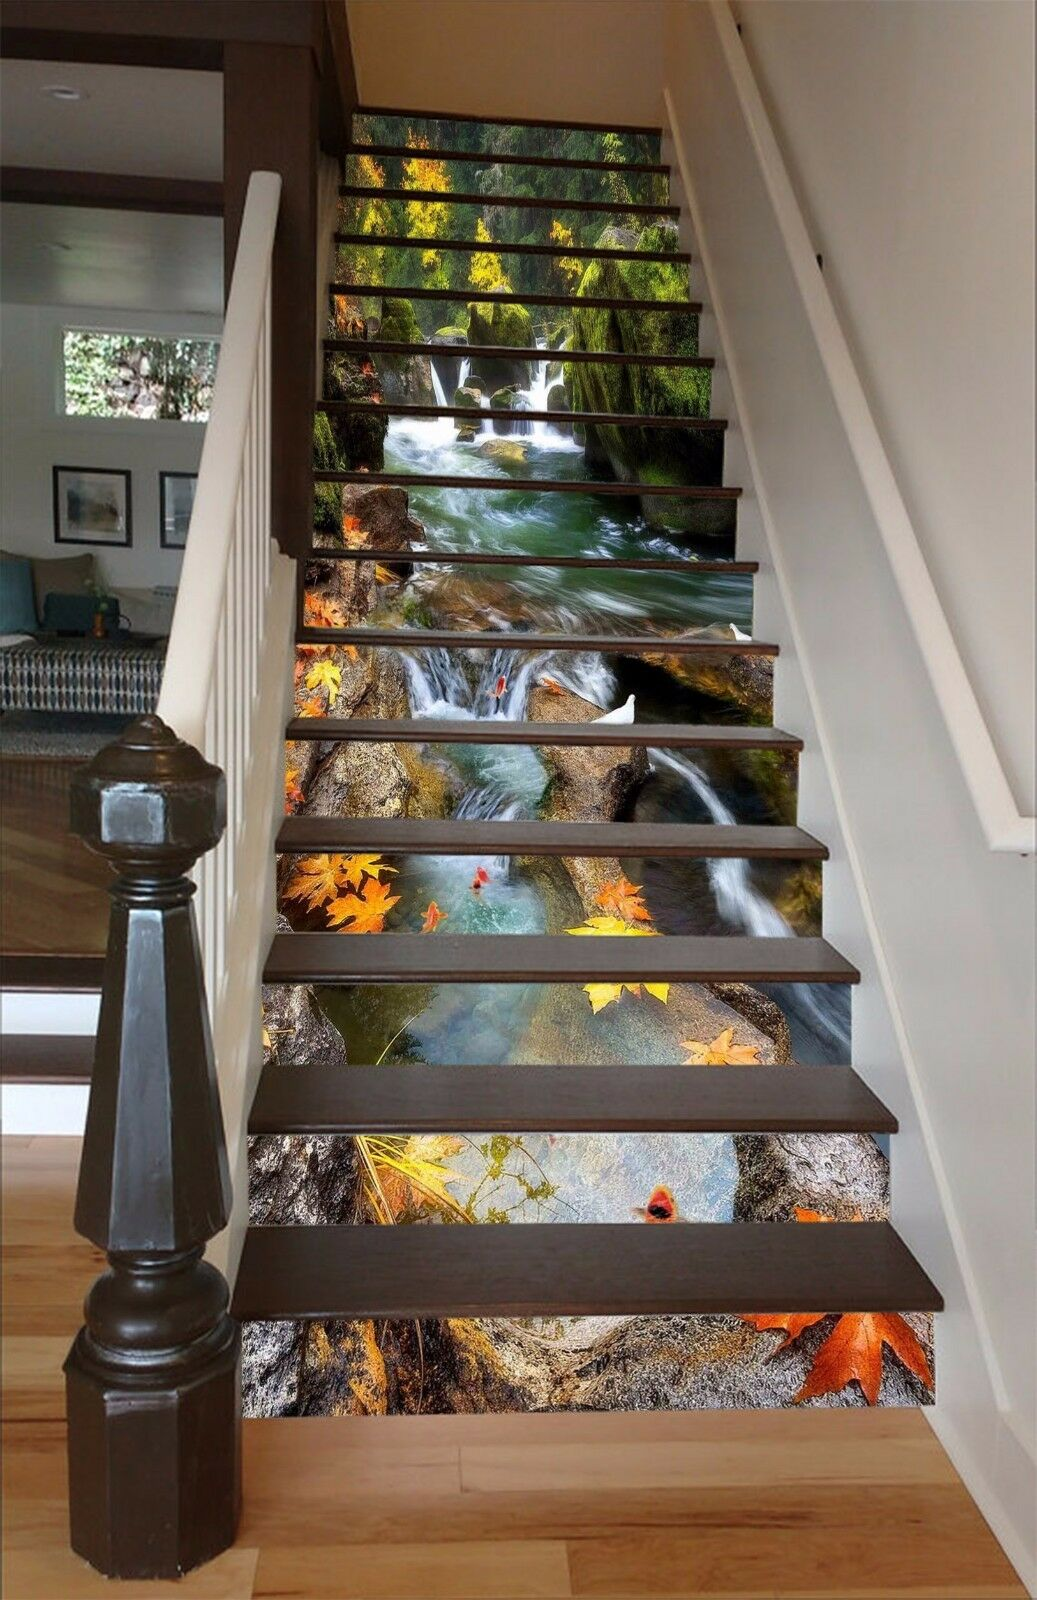 3D Rivulet Leaf 597 Stair Risers Decoration Photo Mural Vinyl Decal WandPapier AU